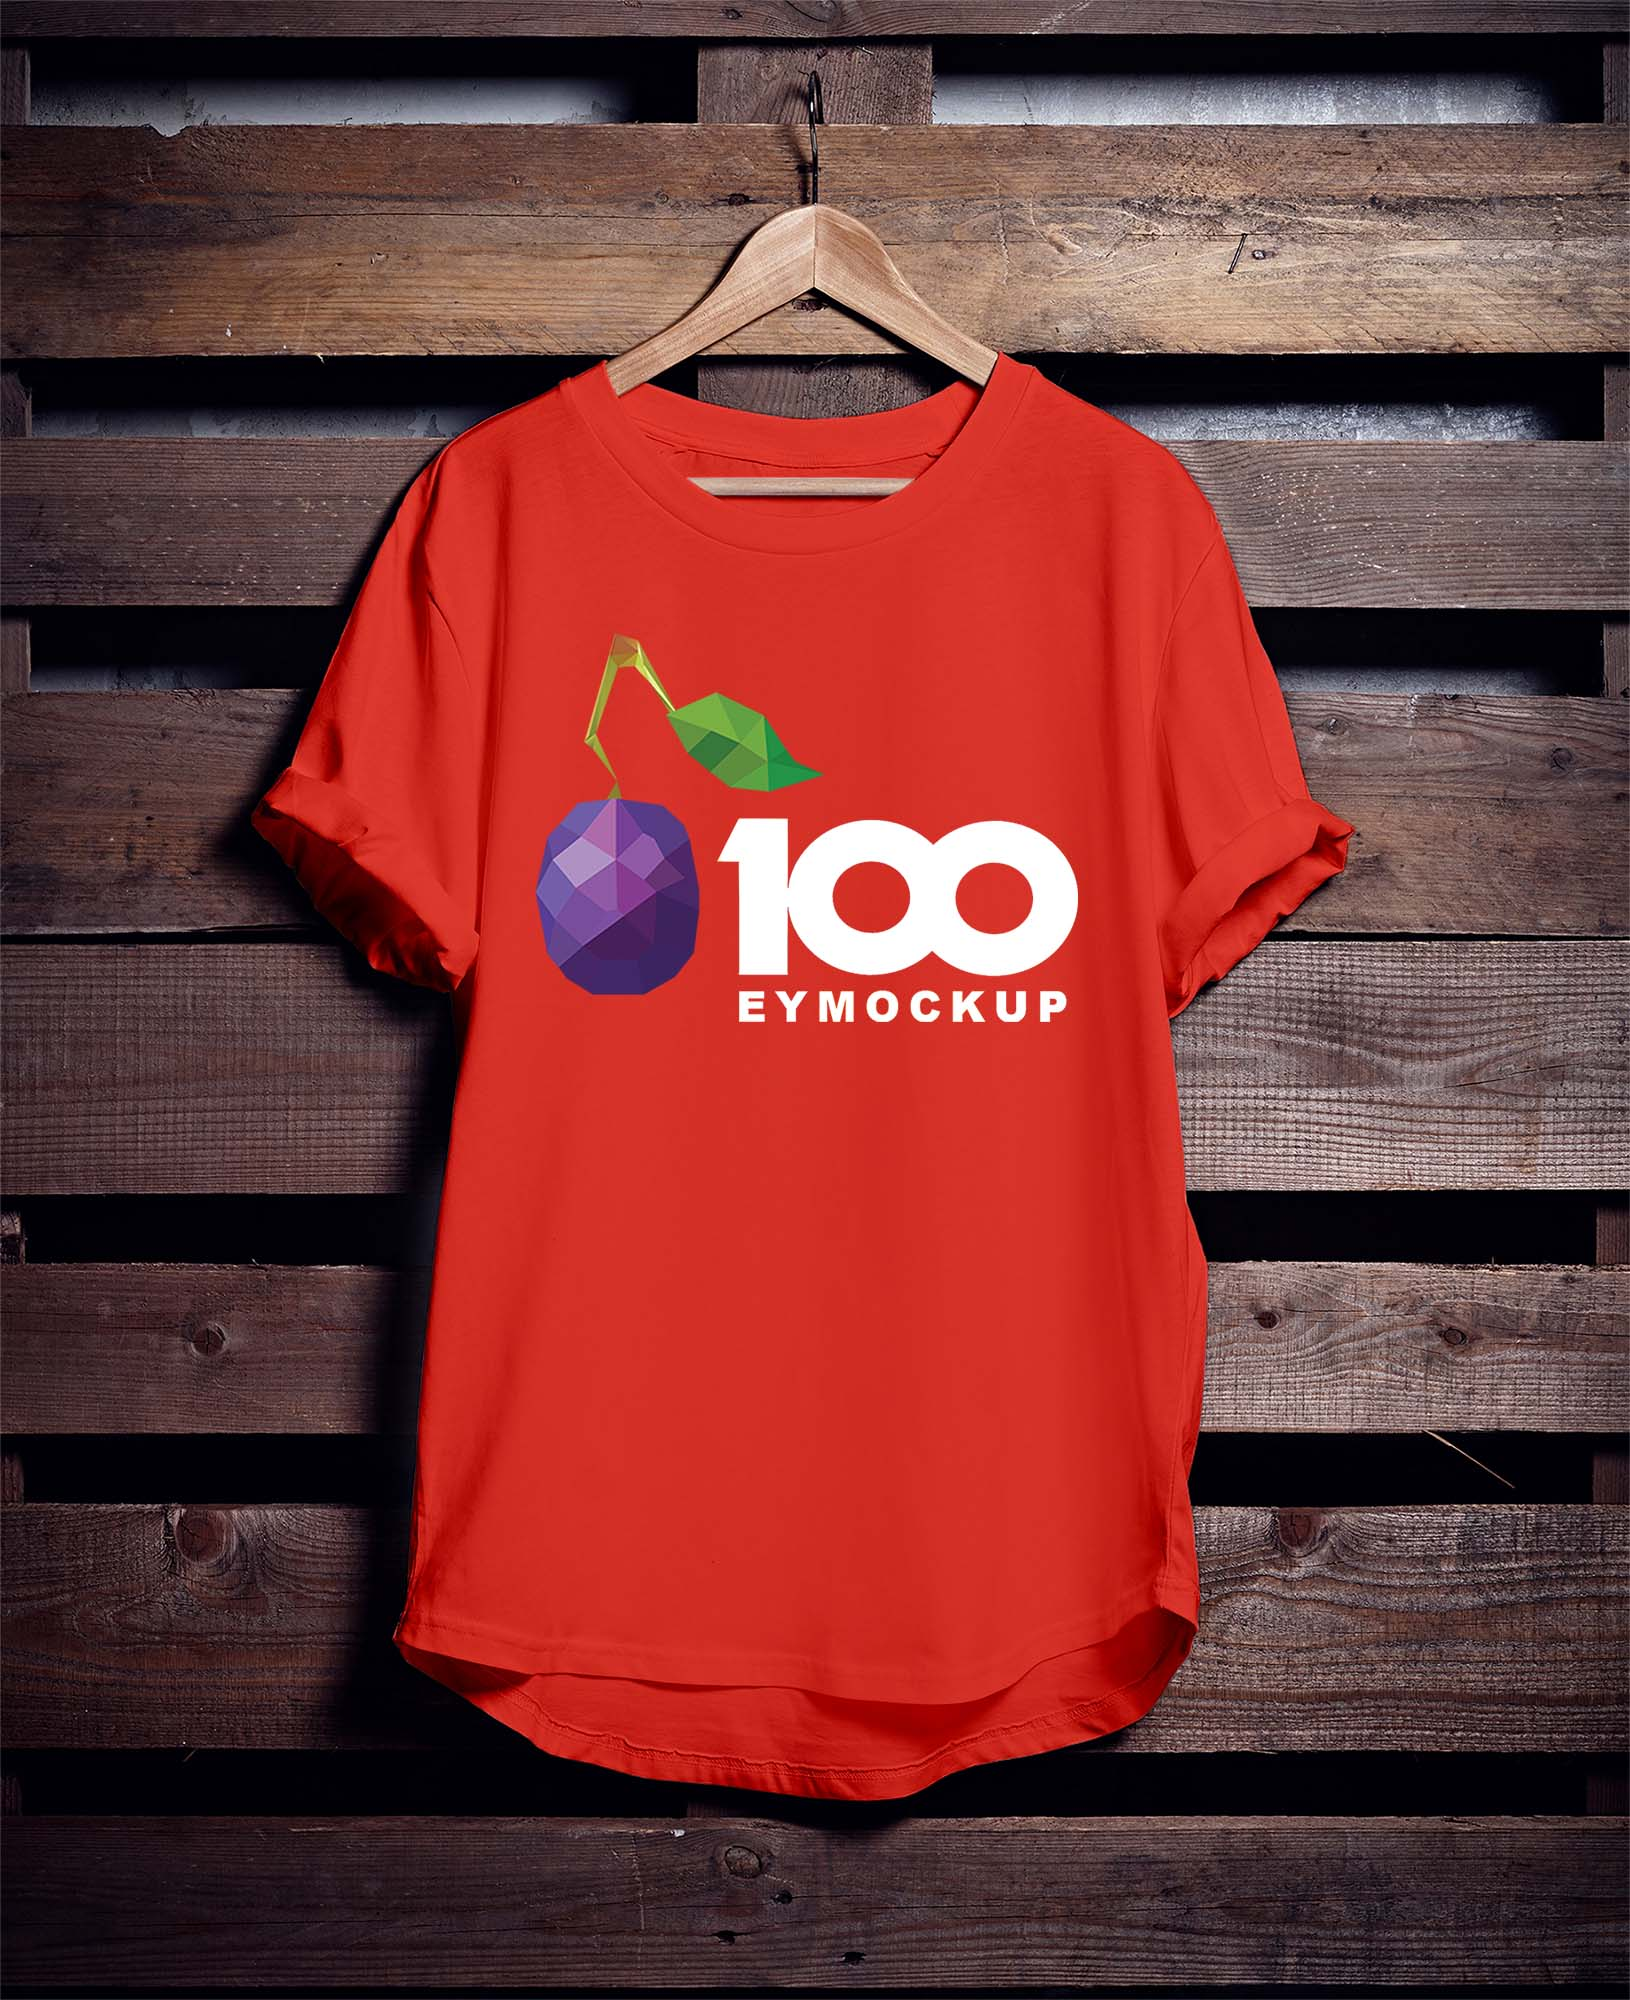 Free Hanging Red T-Shirt Mockup